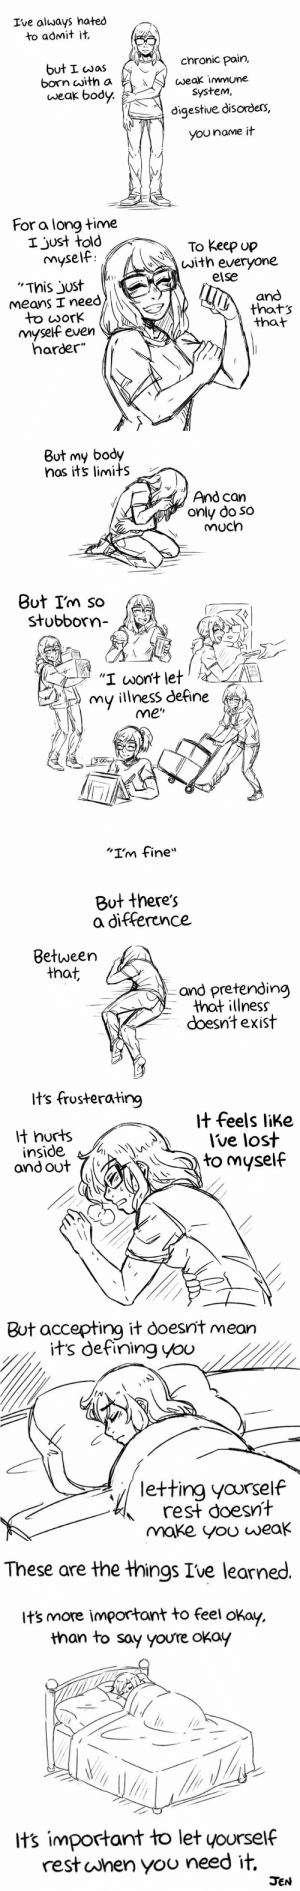 """Tbh, Tumblr, and Twitter: Ive always hated  to admit it,  but I cwaschronic pain,  weak immune  born with a  weak body.  system,  digestive disorders,  You name it  For a long time  I just told  myself  To keep up  with everyone  and  that  else  '""""This just  Means I need  のthats  dork  nmyself even  harder""""   But my body  nos its limits  And can  only do so  Much  Out Im so  stobbor""""  C,  upu  THE  """"I wont let  my illness define  me""""  3:00  """"I'm fine""""   But there's  a difference  Between  that,  and pretending  that illness  doesnt exist  Its frusterating  it feels like  lt hurts  inside  ond out  Ive lost  to myself  1   But accepting it doesnit mean  its defining you  letting yovrself  rest doesnt  make yoo weak  These are the things Ive learned.  its more important to feel okay.  than to say youre okay  its important to let yourself  rest uJhen yoo need it,  JEN heauxkagei:  makingmyinvisiblevisible:  gleamsocial: A reminder to myself and others: It's important to let yourself rest when you need it 💙  This is so important 💜   I really needed to hear this tbh"""